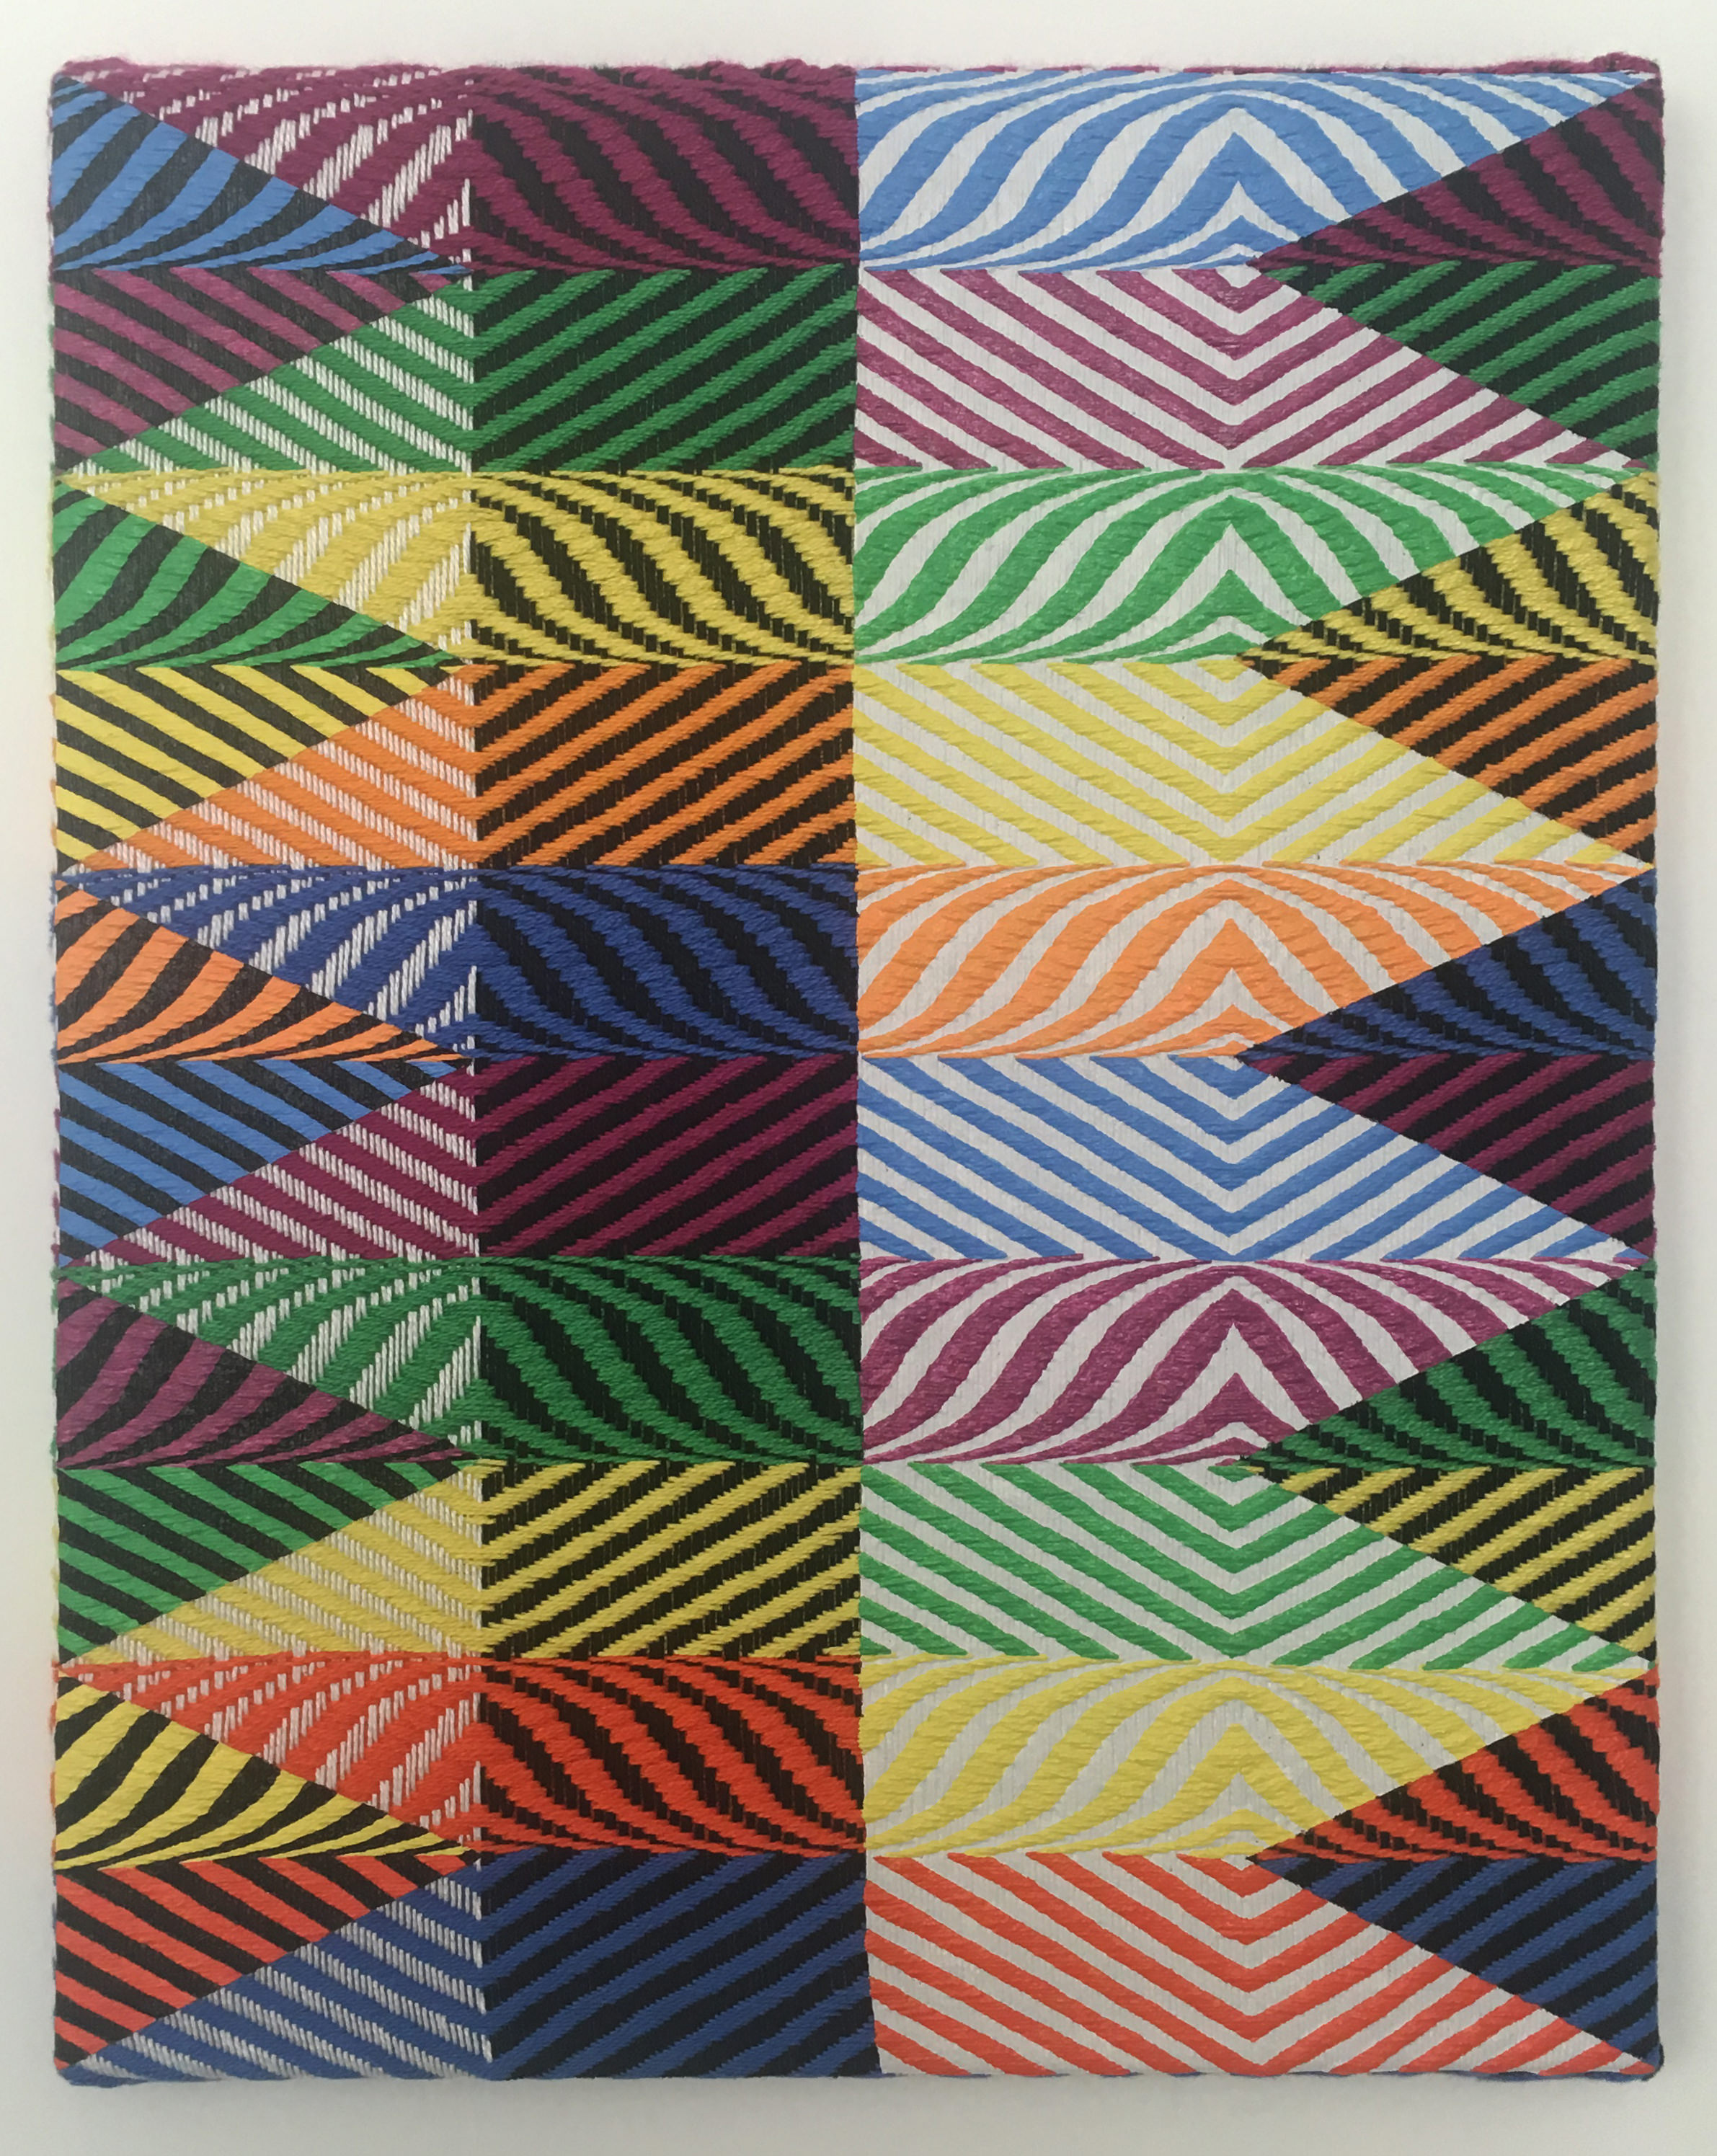 Samantha Bittman, Untitled, 2017, Samantha Bittman, Untitled, 2017, acrylic on hand-woven textile, 20×16 in, inv. n. 2017-033